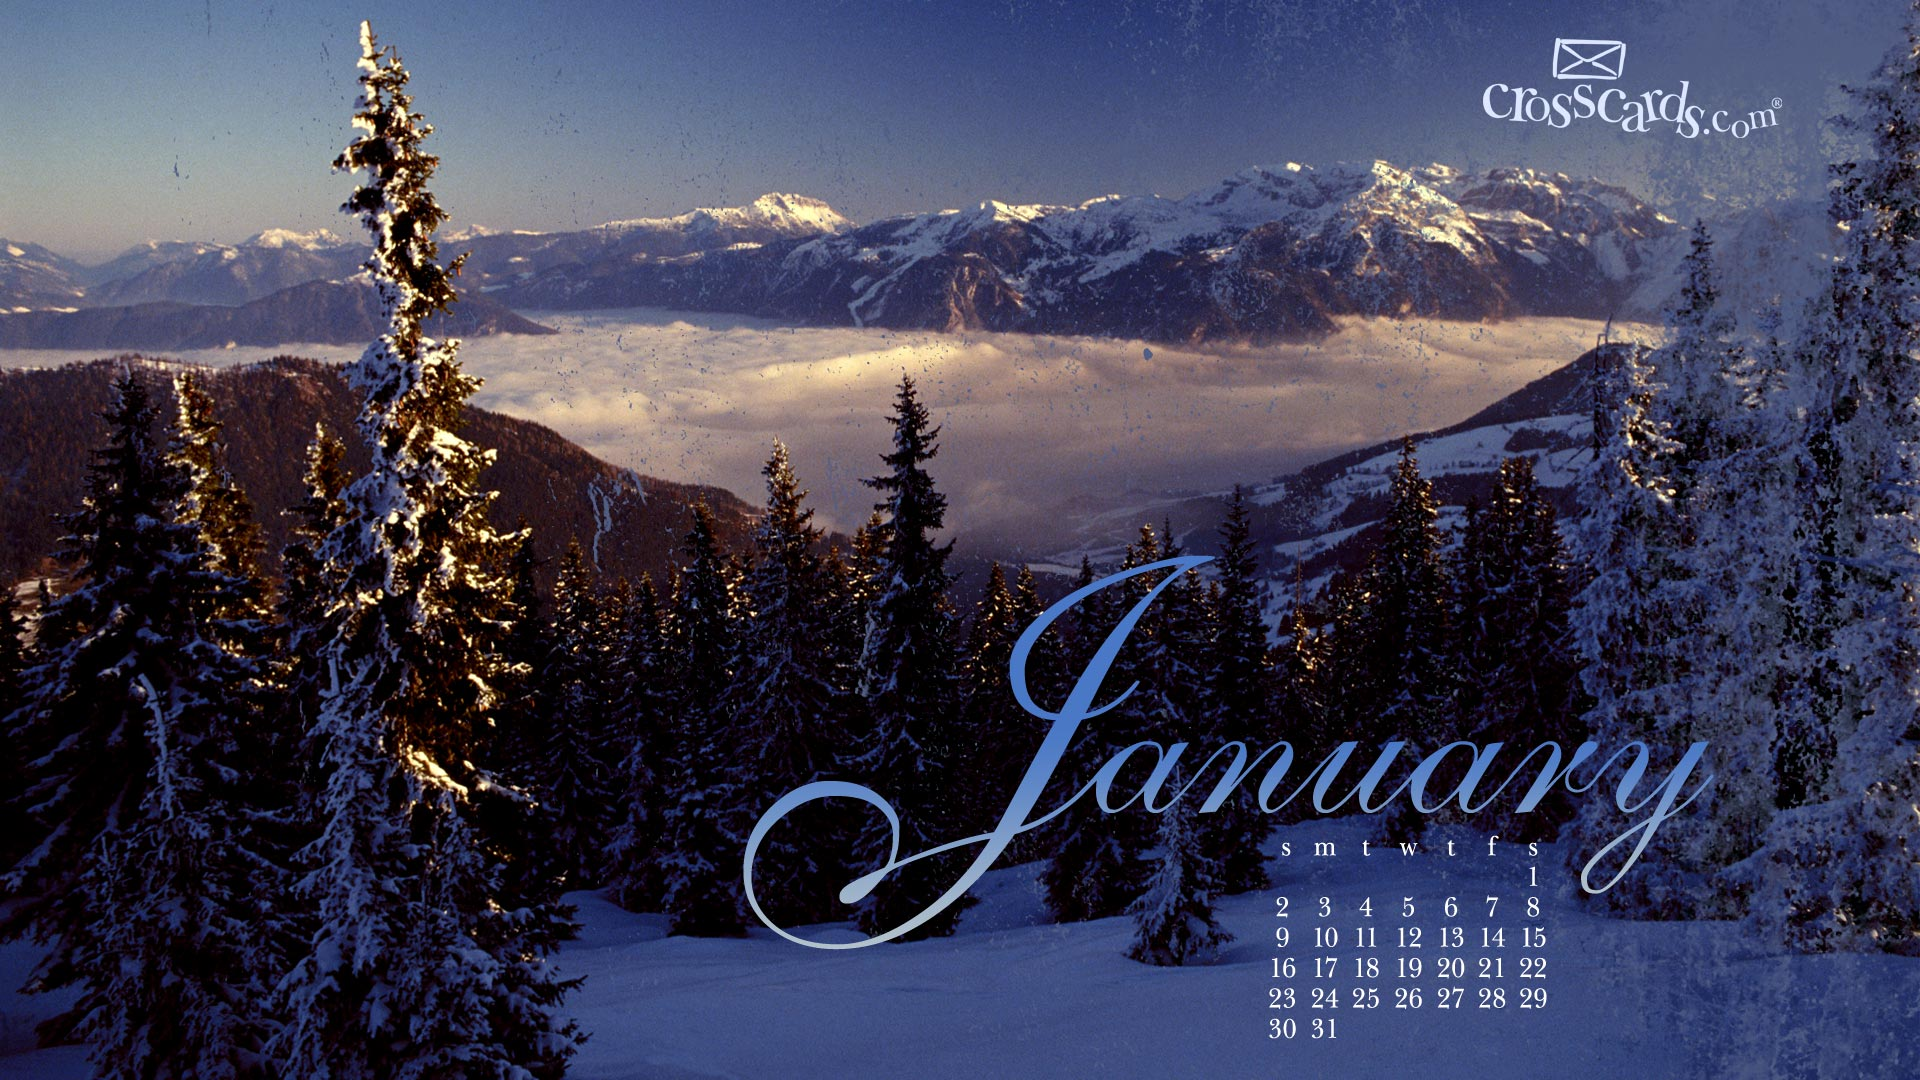 January Calendars Computer Monthly Christian Crosscards HD wallpapers 1920x1080